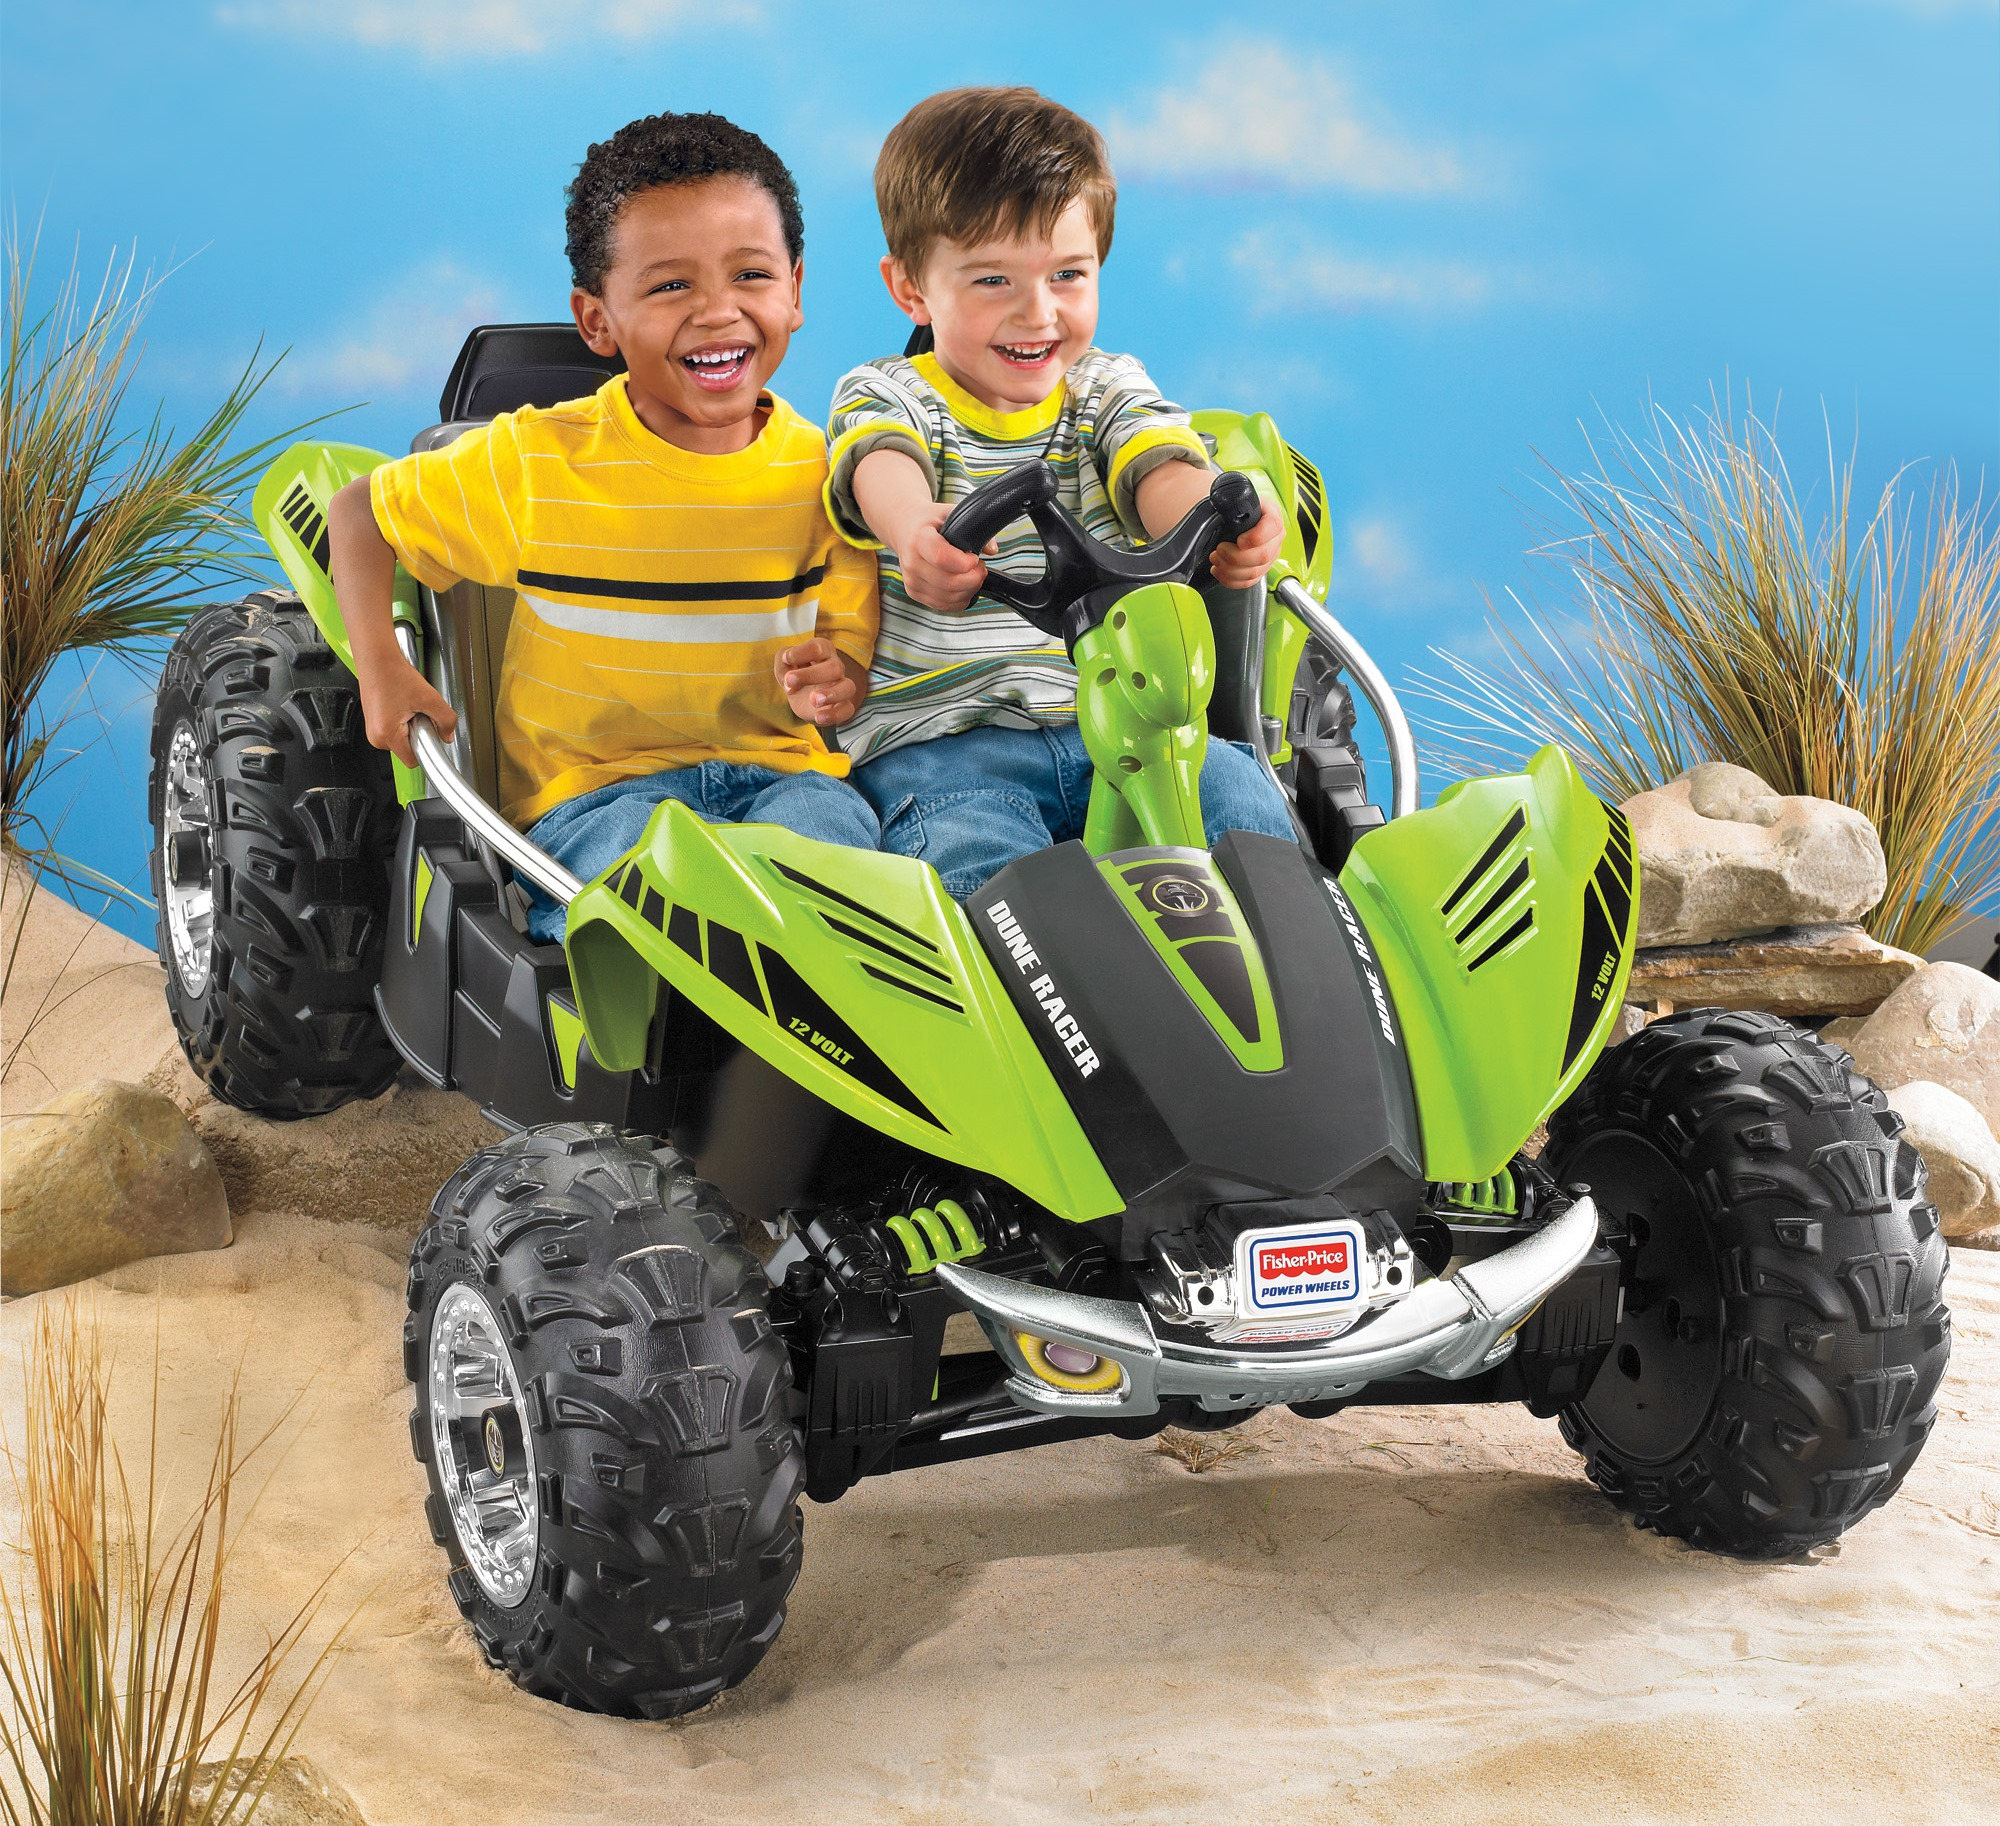 Power Wheels Dune Racer 12-Volt Battery-Powered Ride-on